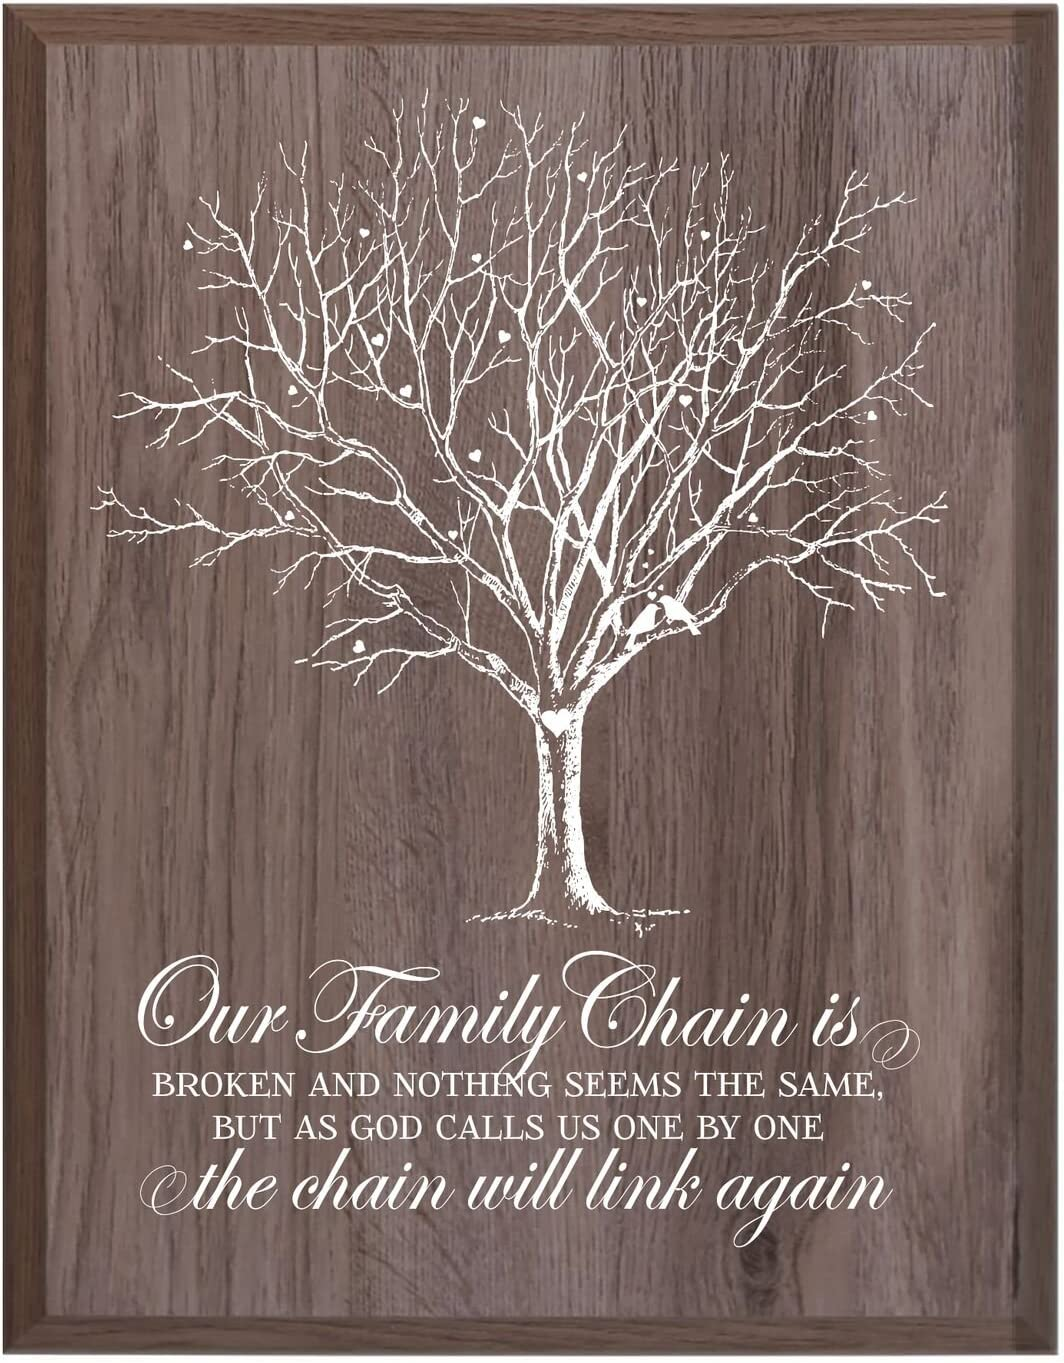 LifeSong Milestones Custom Engraved Personalized Wooden Wall Plaque Bereavement Keepsake in Remberance of Loved One Condolence Funeral Gift 12x15 Family Chain